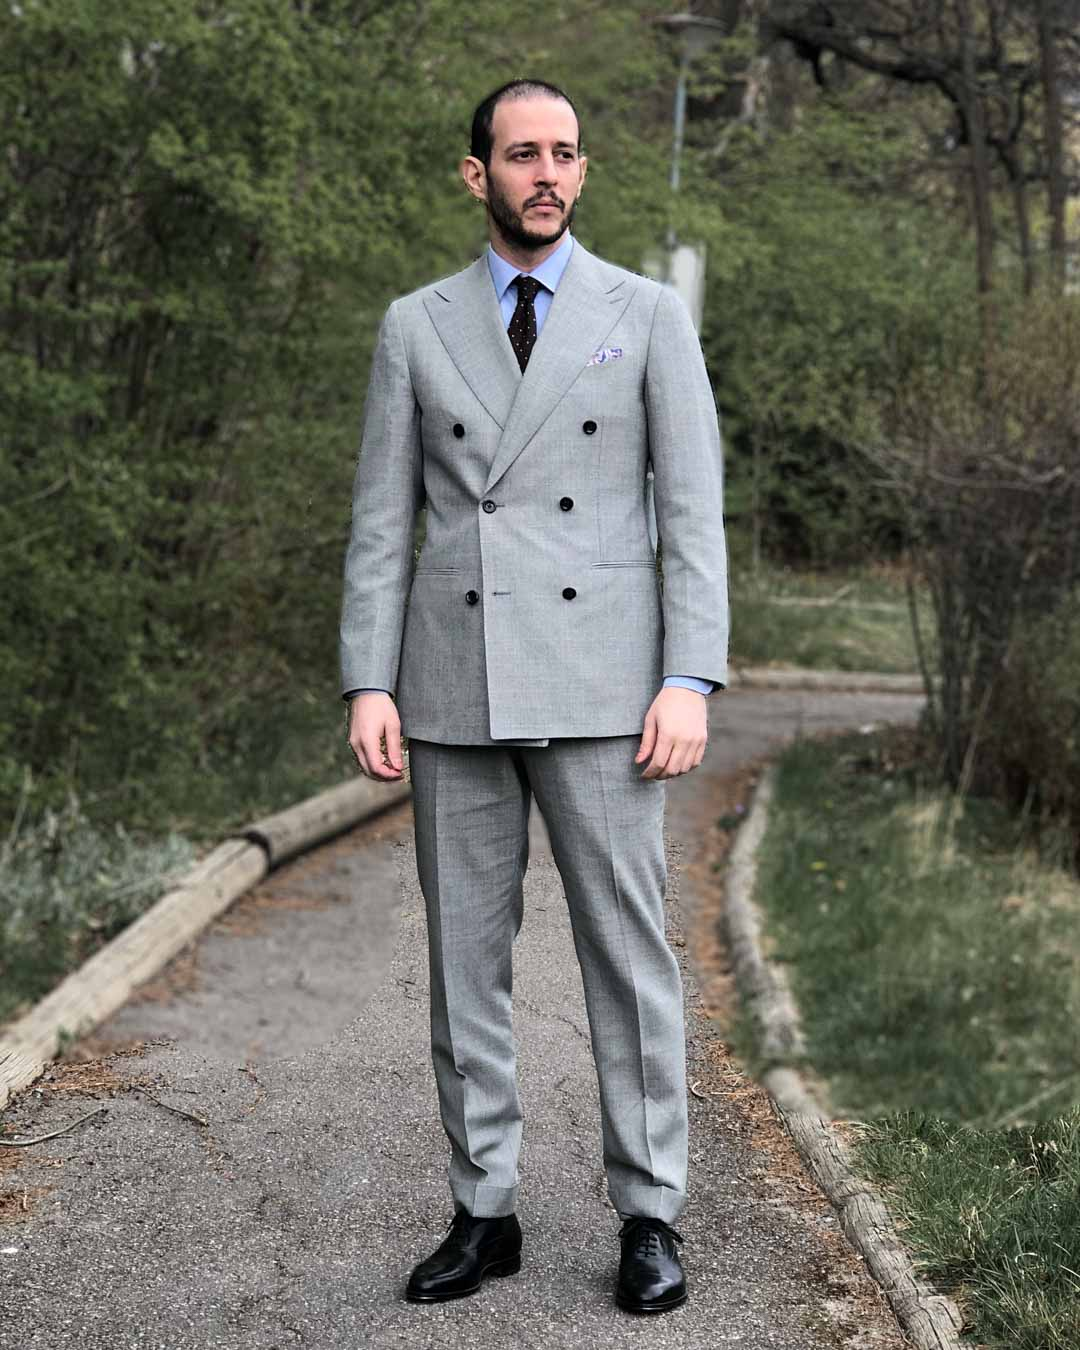 Suitsupply Light Grey Suit and Black Shoes